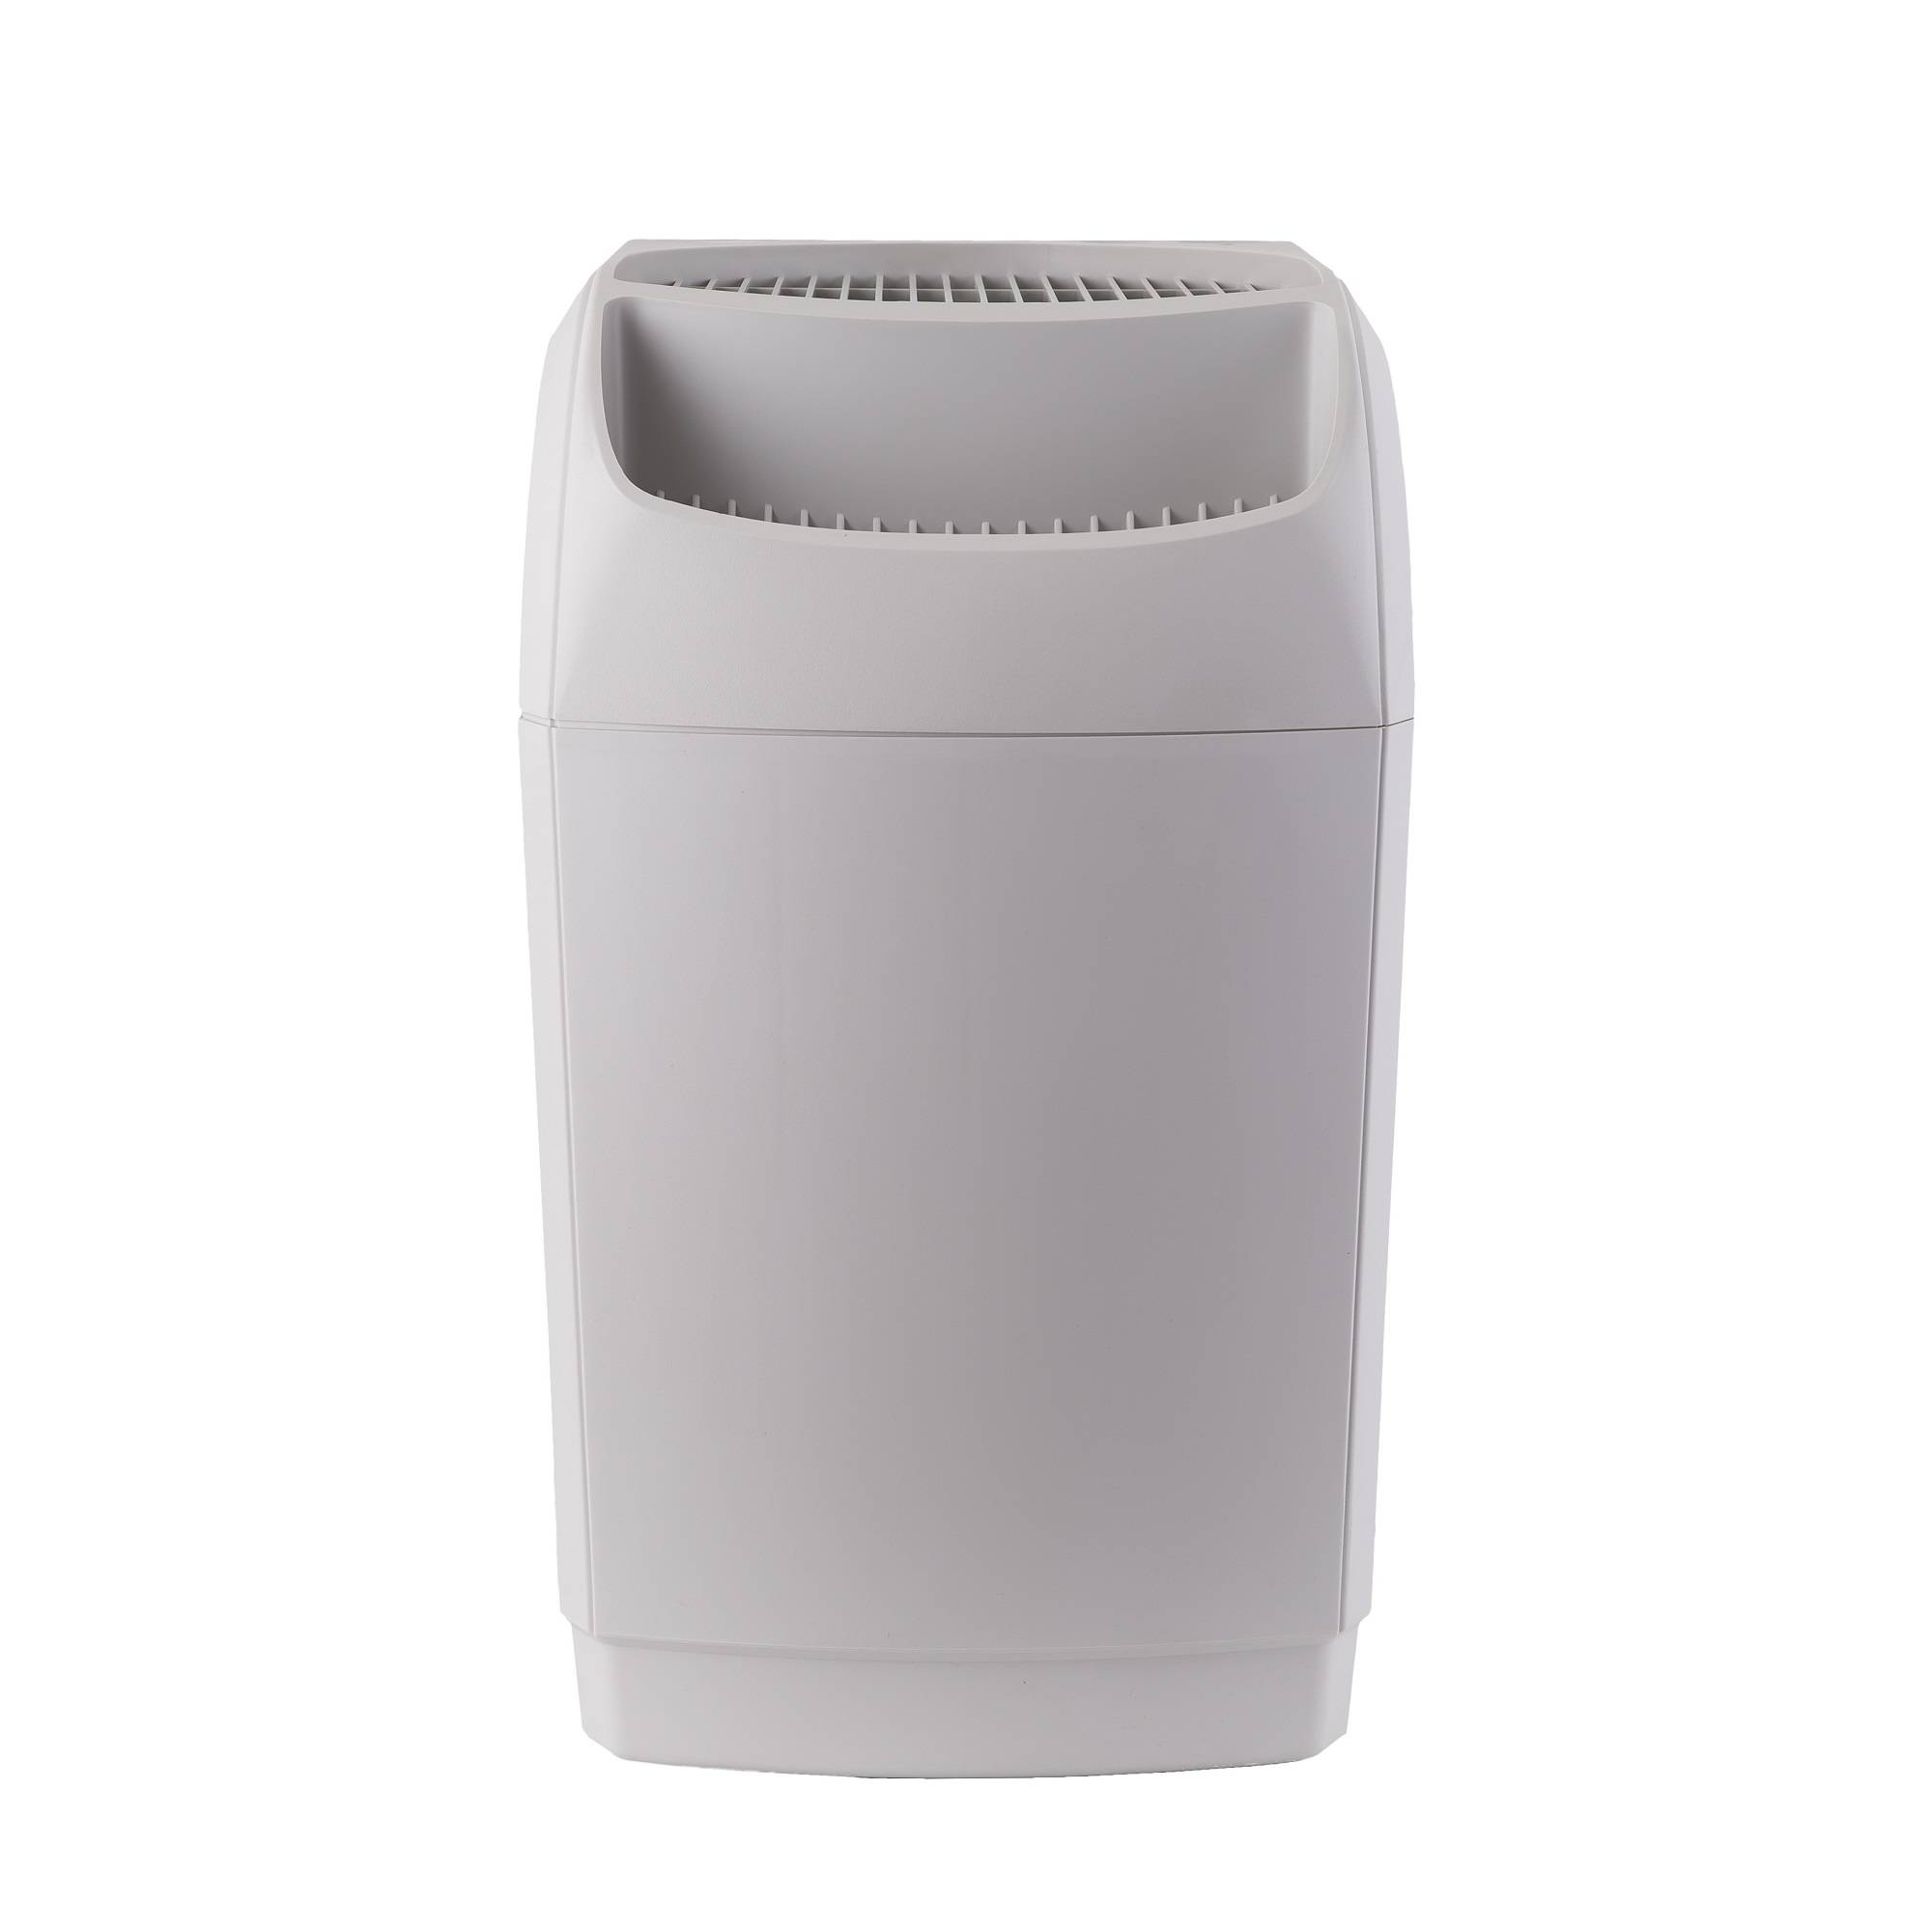 AIRCARE SS390DWHT Whole House Humidifier Walmart.com #6A616A